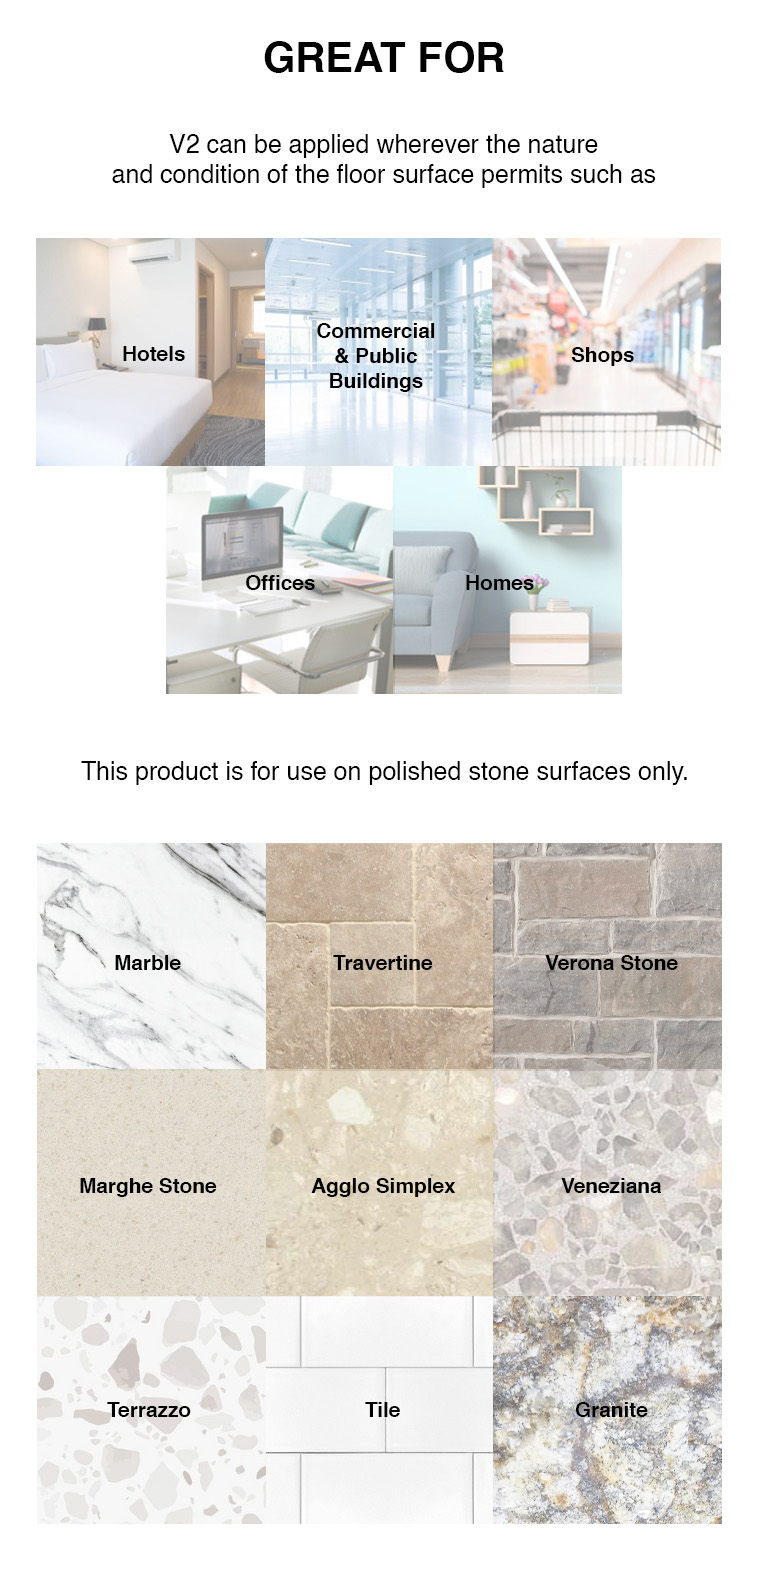 hotels, commercial public buildings, shops, offices, homes, marble, travertine, verona stone, marghe stone, agglo simplex, venezianan, terrazzo, tile, granite.